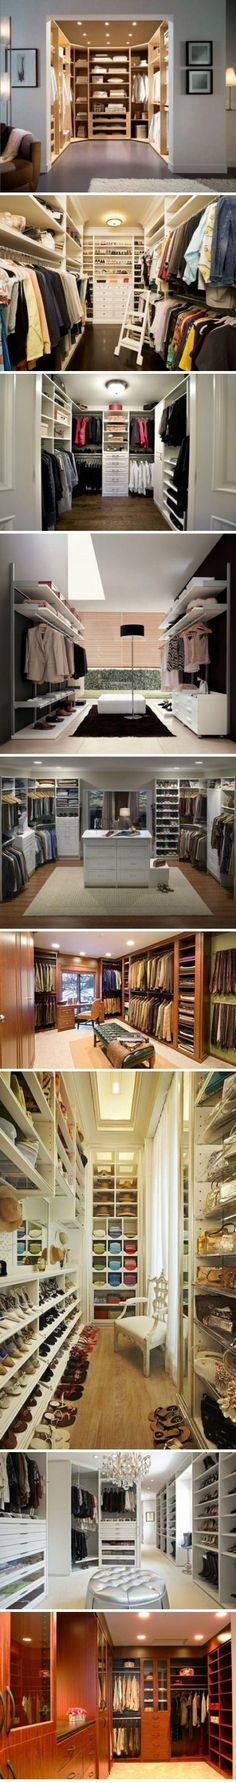 in case you ran out of ideas, here are more wardrobes